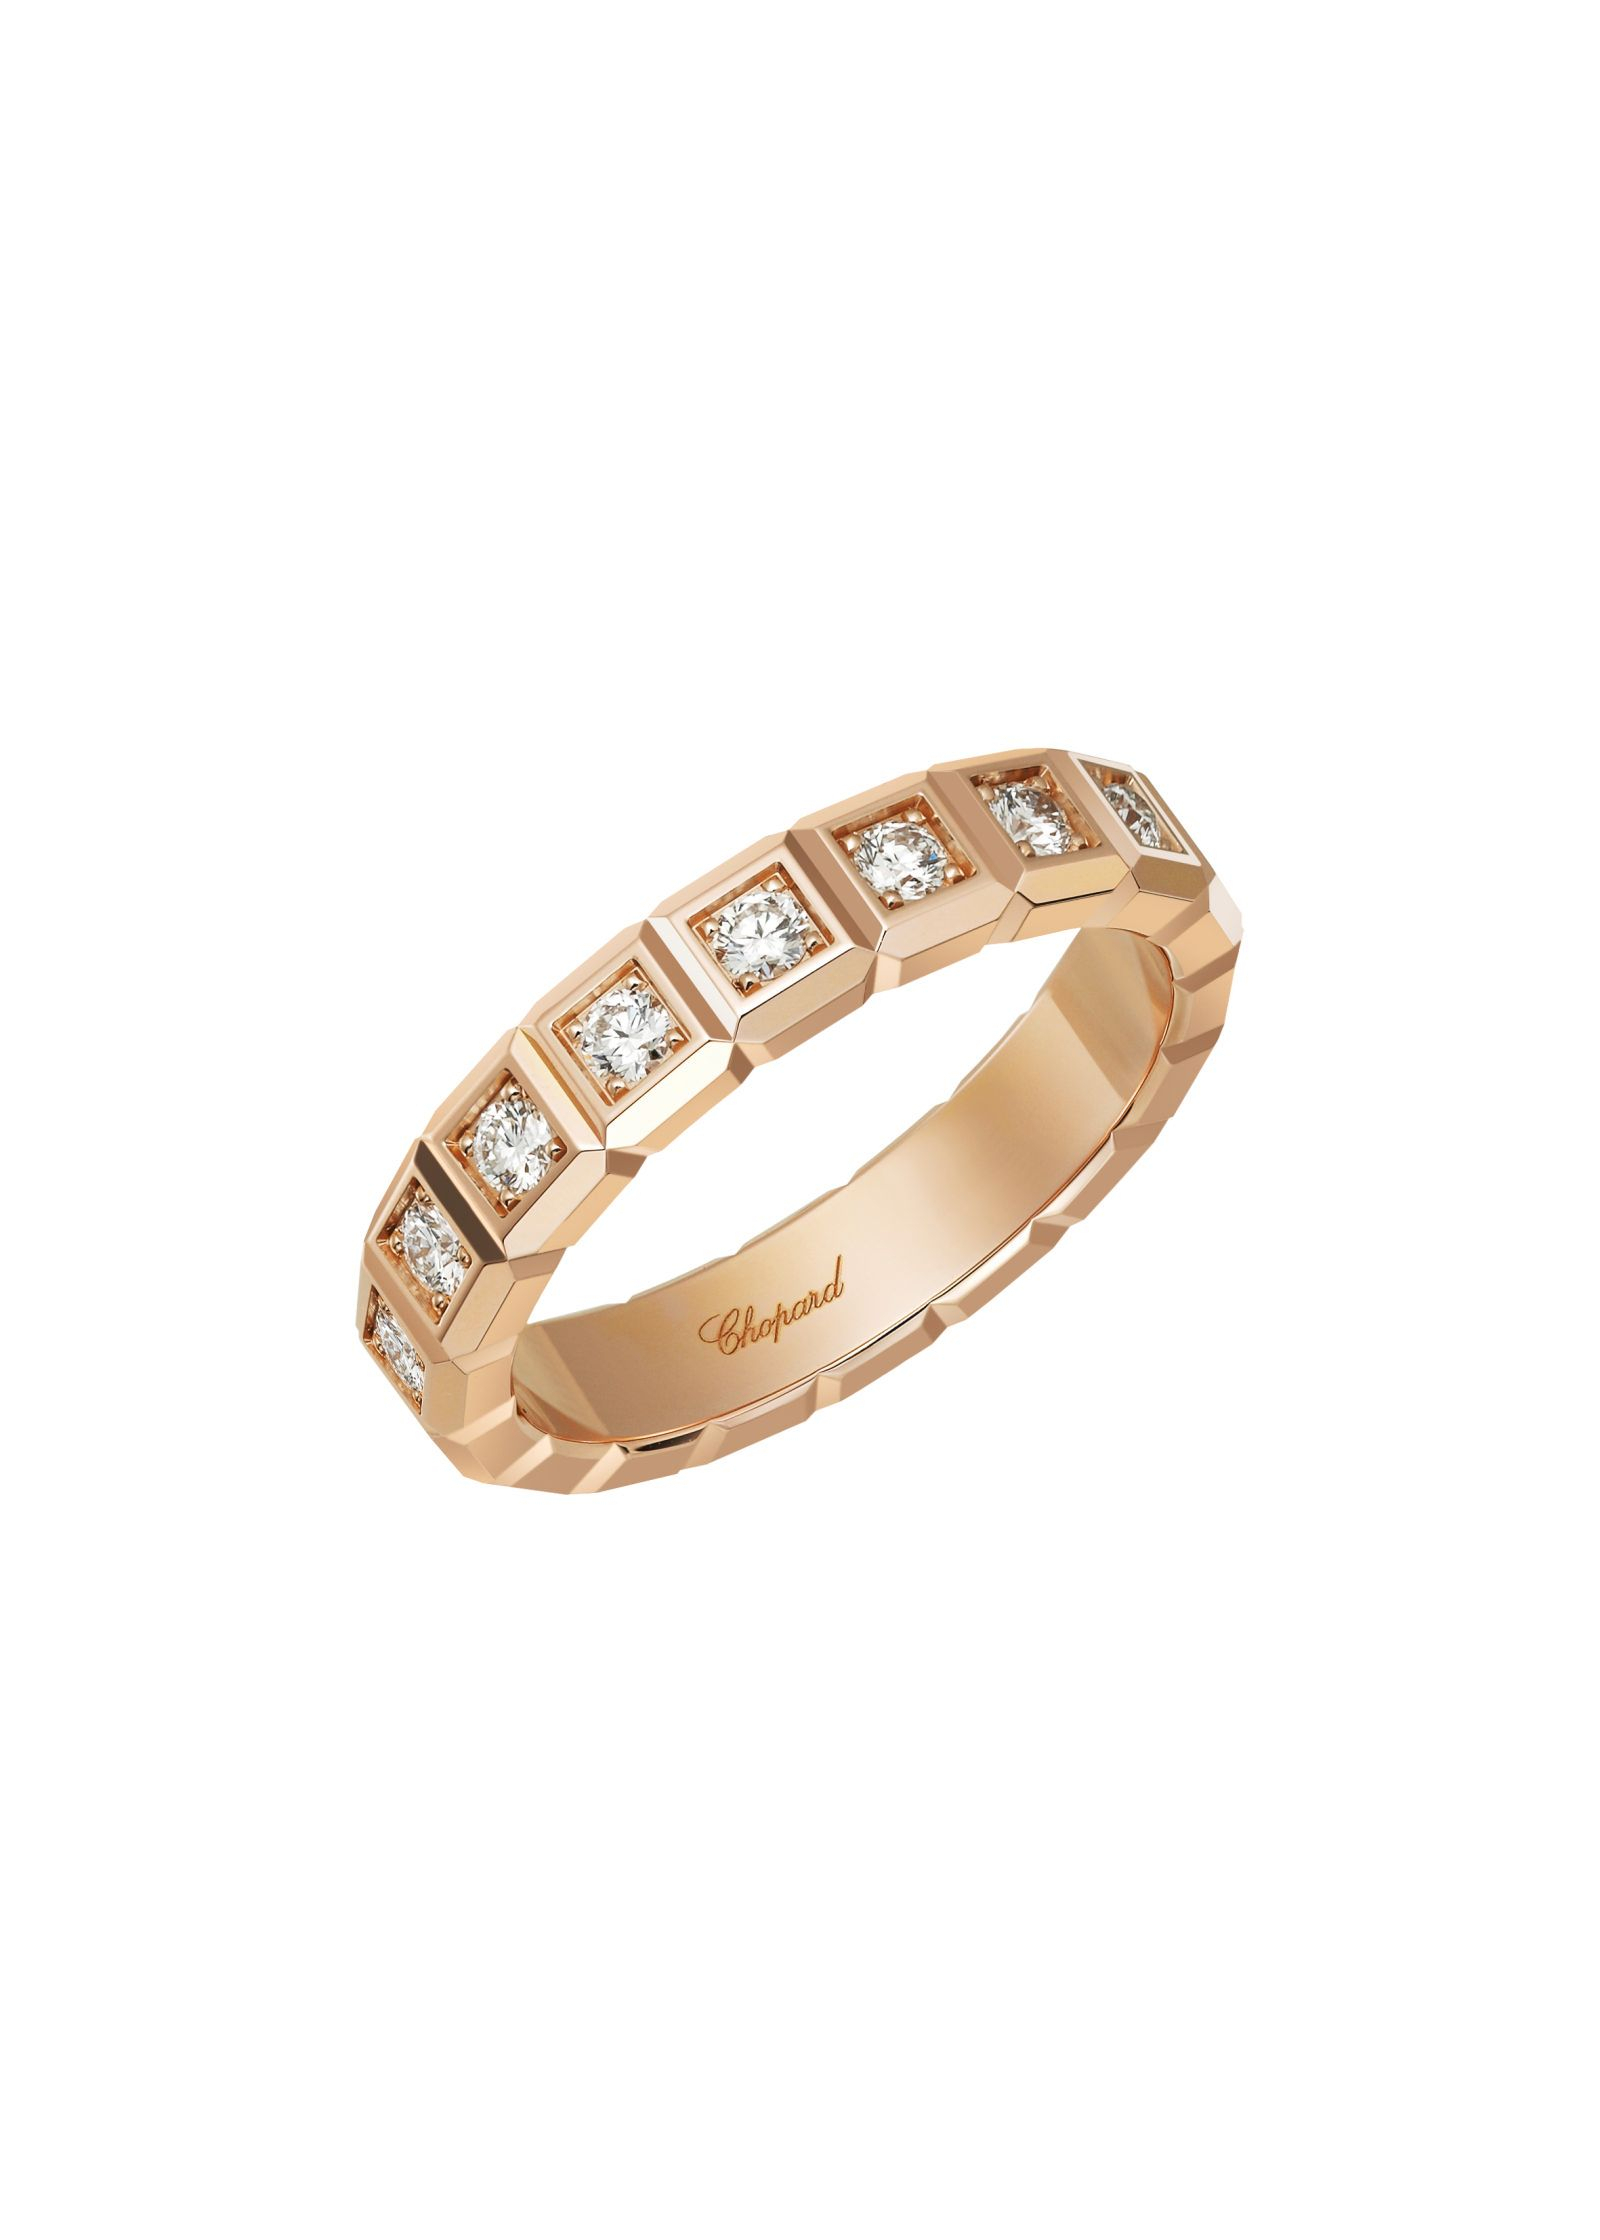 Ice Cube Ring 18K Rose Gold And Diamonds @829834 5099 – Chopard For Most Current Sparkling Ice Cube Rings (Gallery 1 of 25)